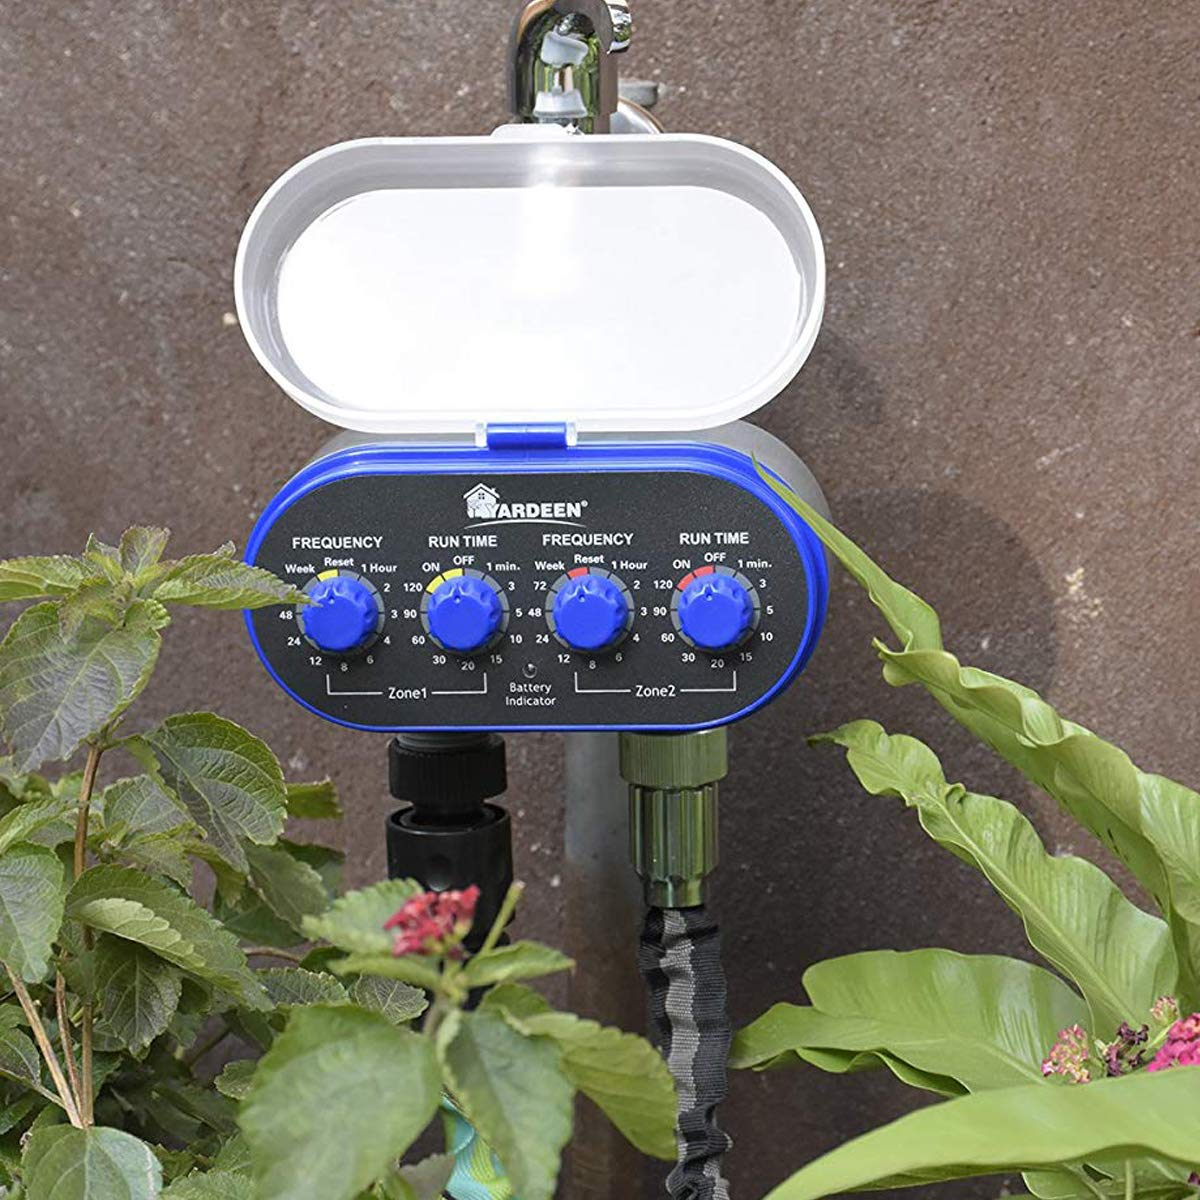 No Water Pressure Required Yardeen Dual Outlet Water Timer Irrigation Controller System